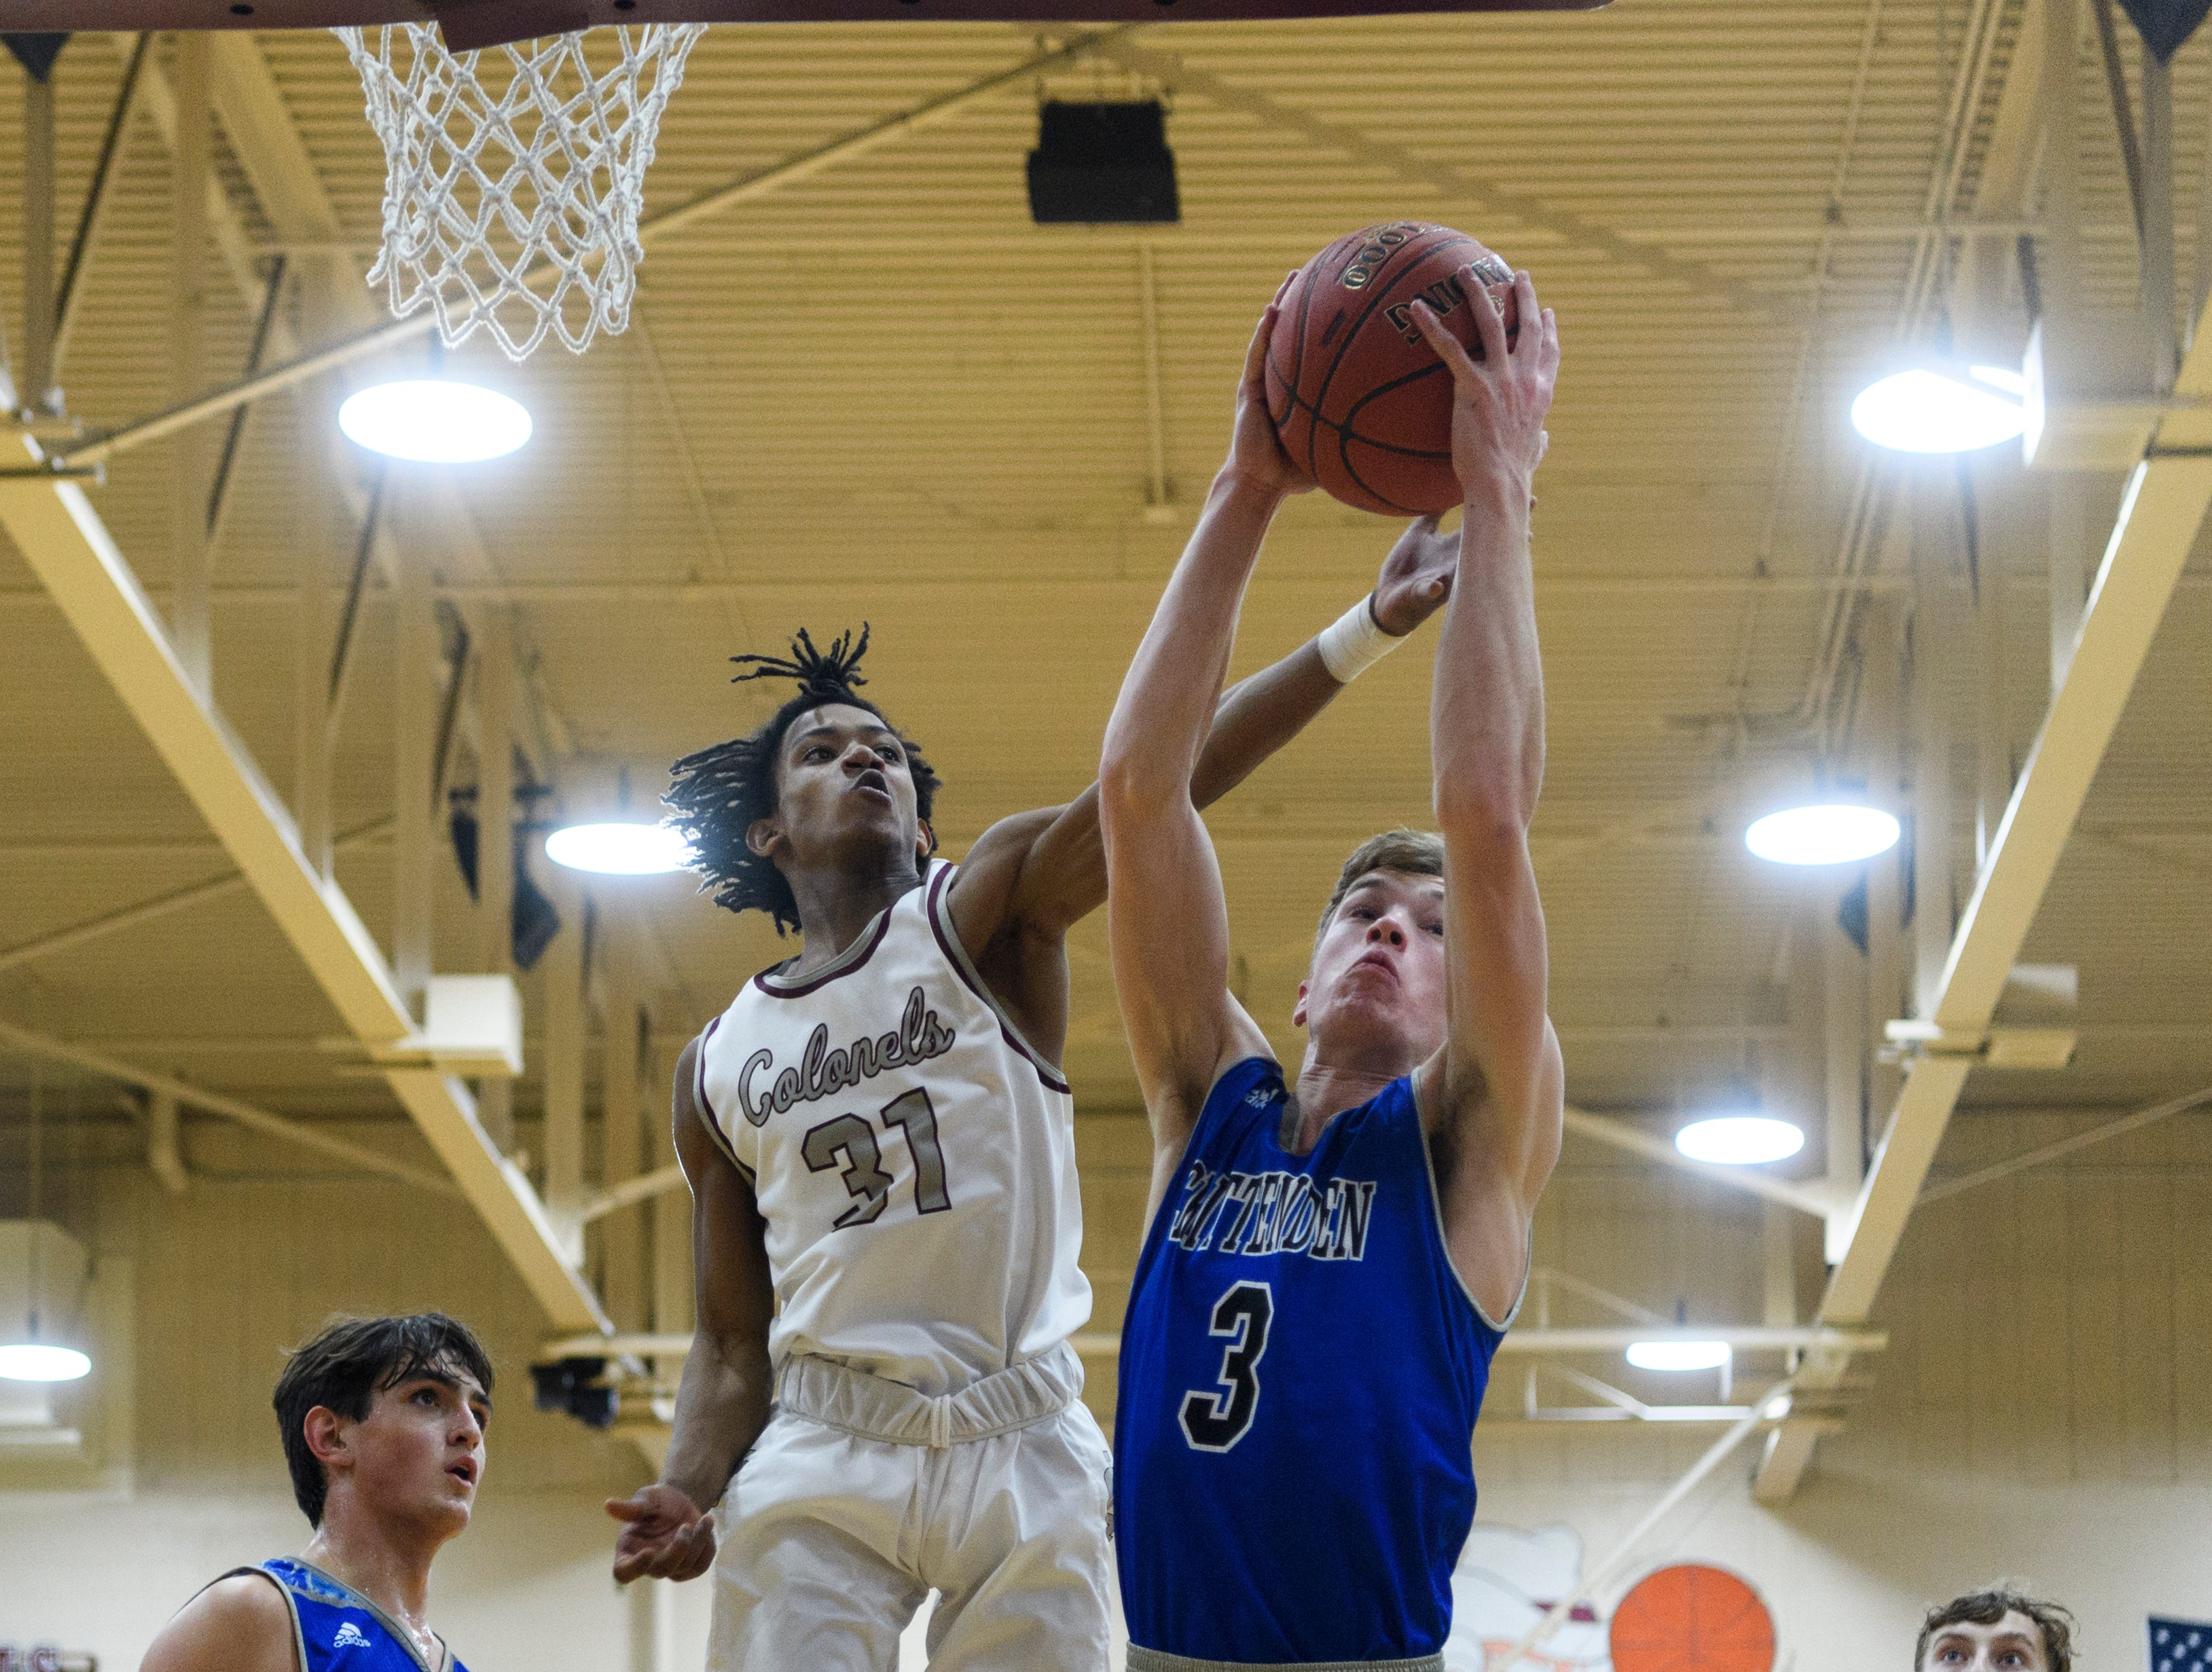 Henderson's Zac Green (31) attempts to take the rebound from Crittenden County's Sawyer Towery during the first quarter at Henderson County High School in Henderson, Ky., Tuesday, Dec. 18, 2018. The Colonels defeated the Rockets 88-52.